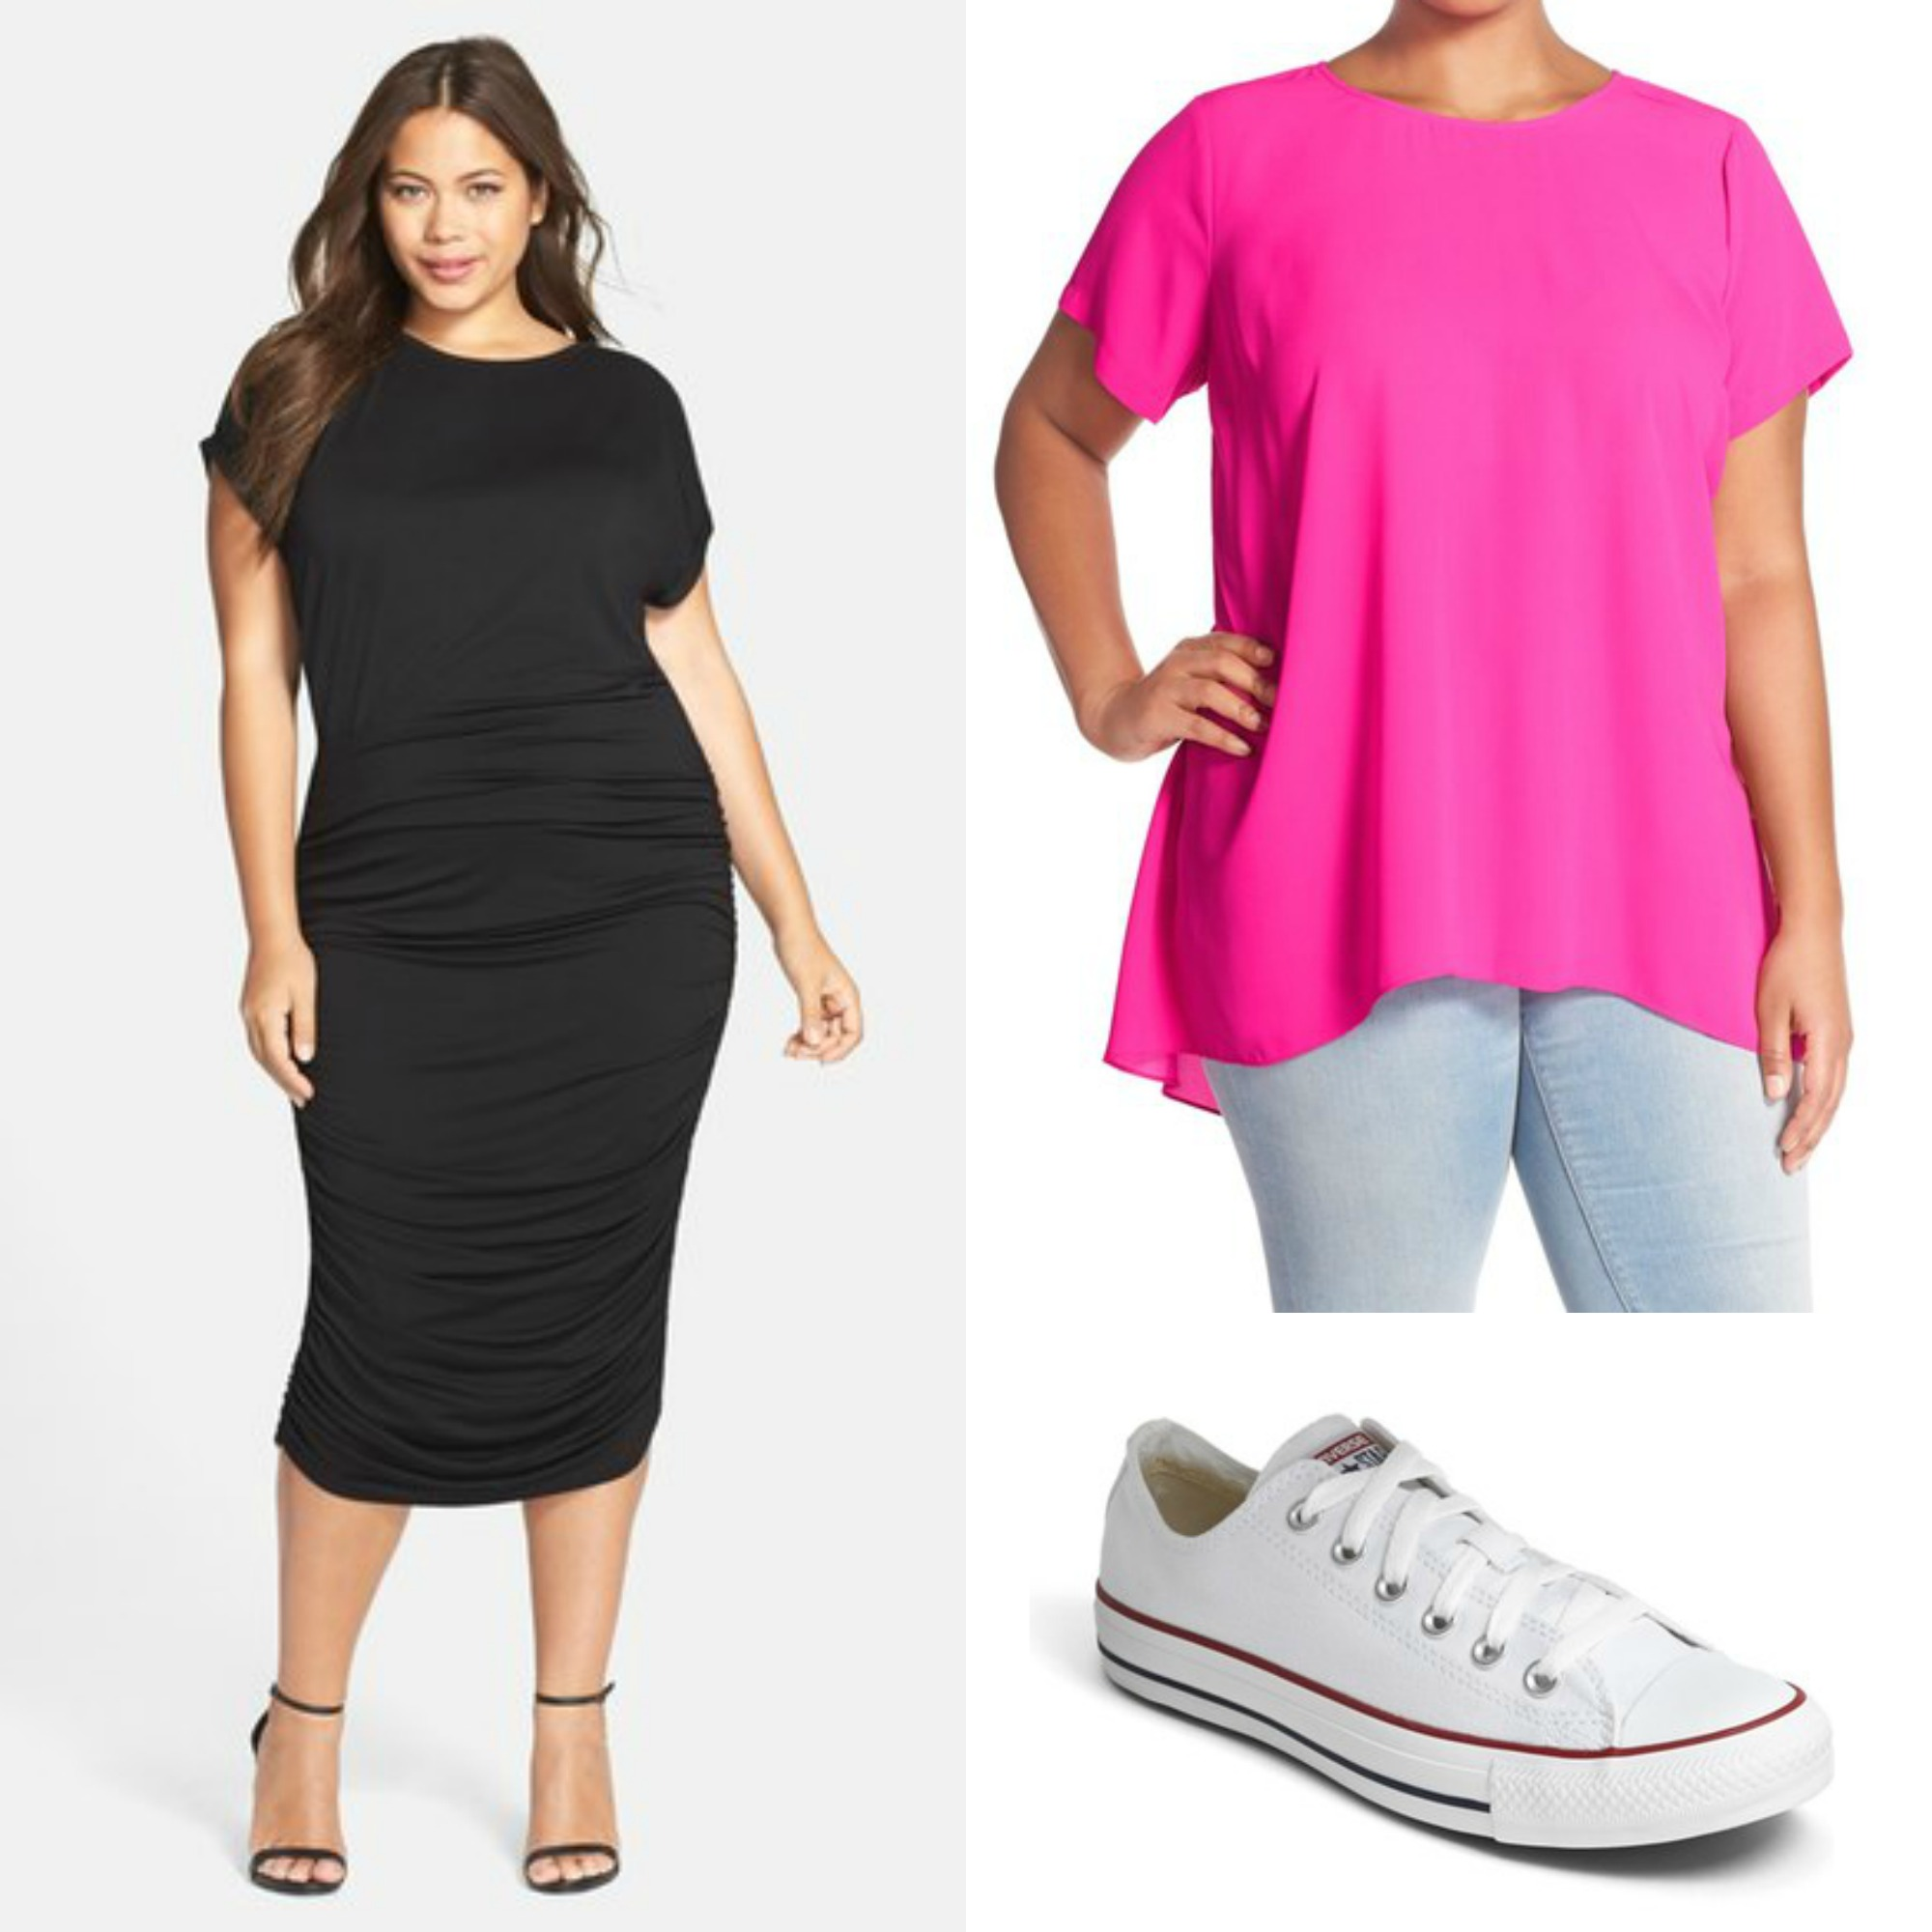 Minimal Wardrobe Options - Plus Size